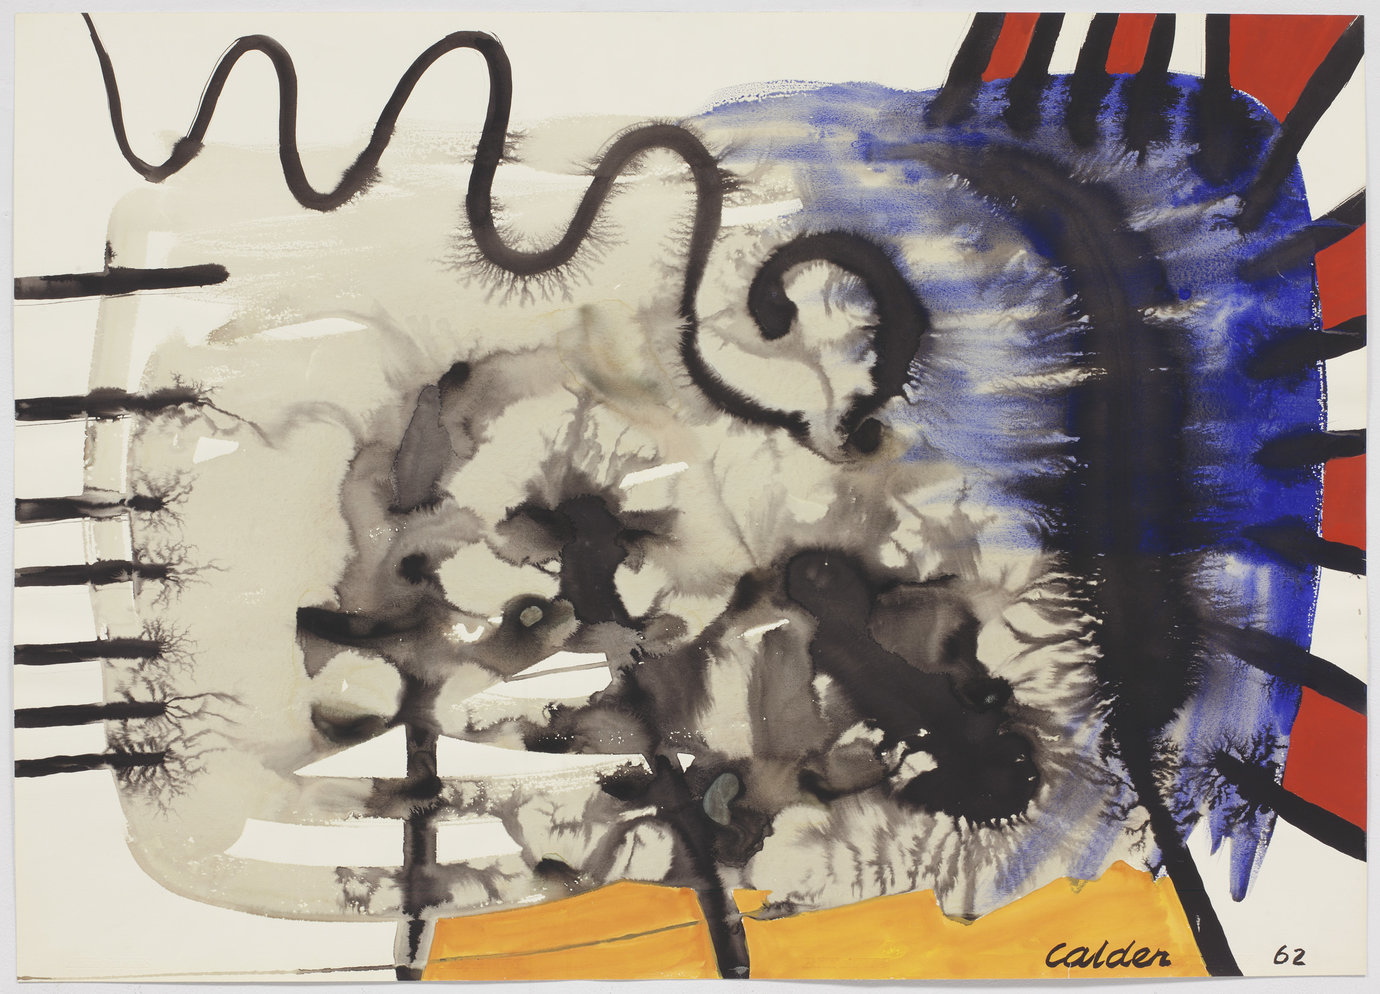 ", 1962. gouache and ink on paper, 29-1/4"" x 41"" (74.3 cm x 104.1 cm)."